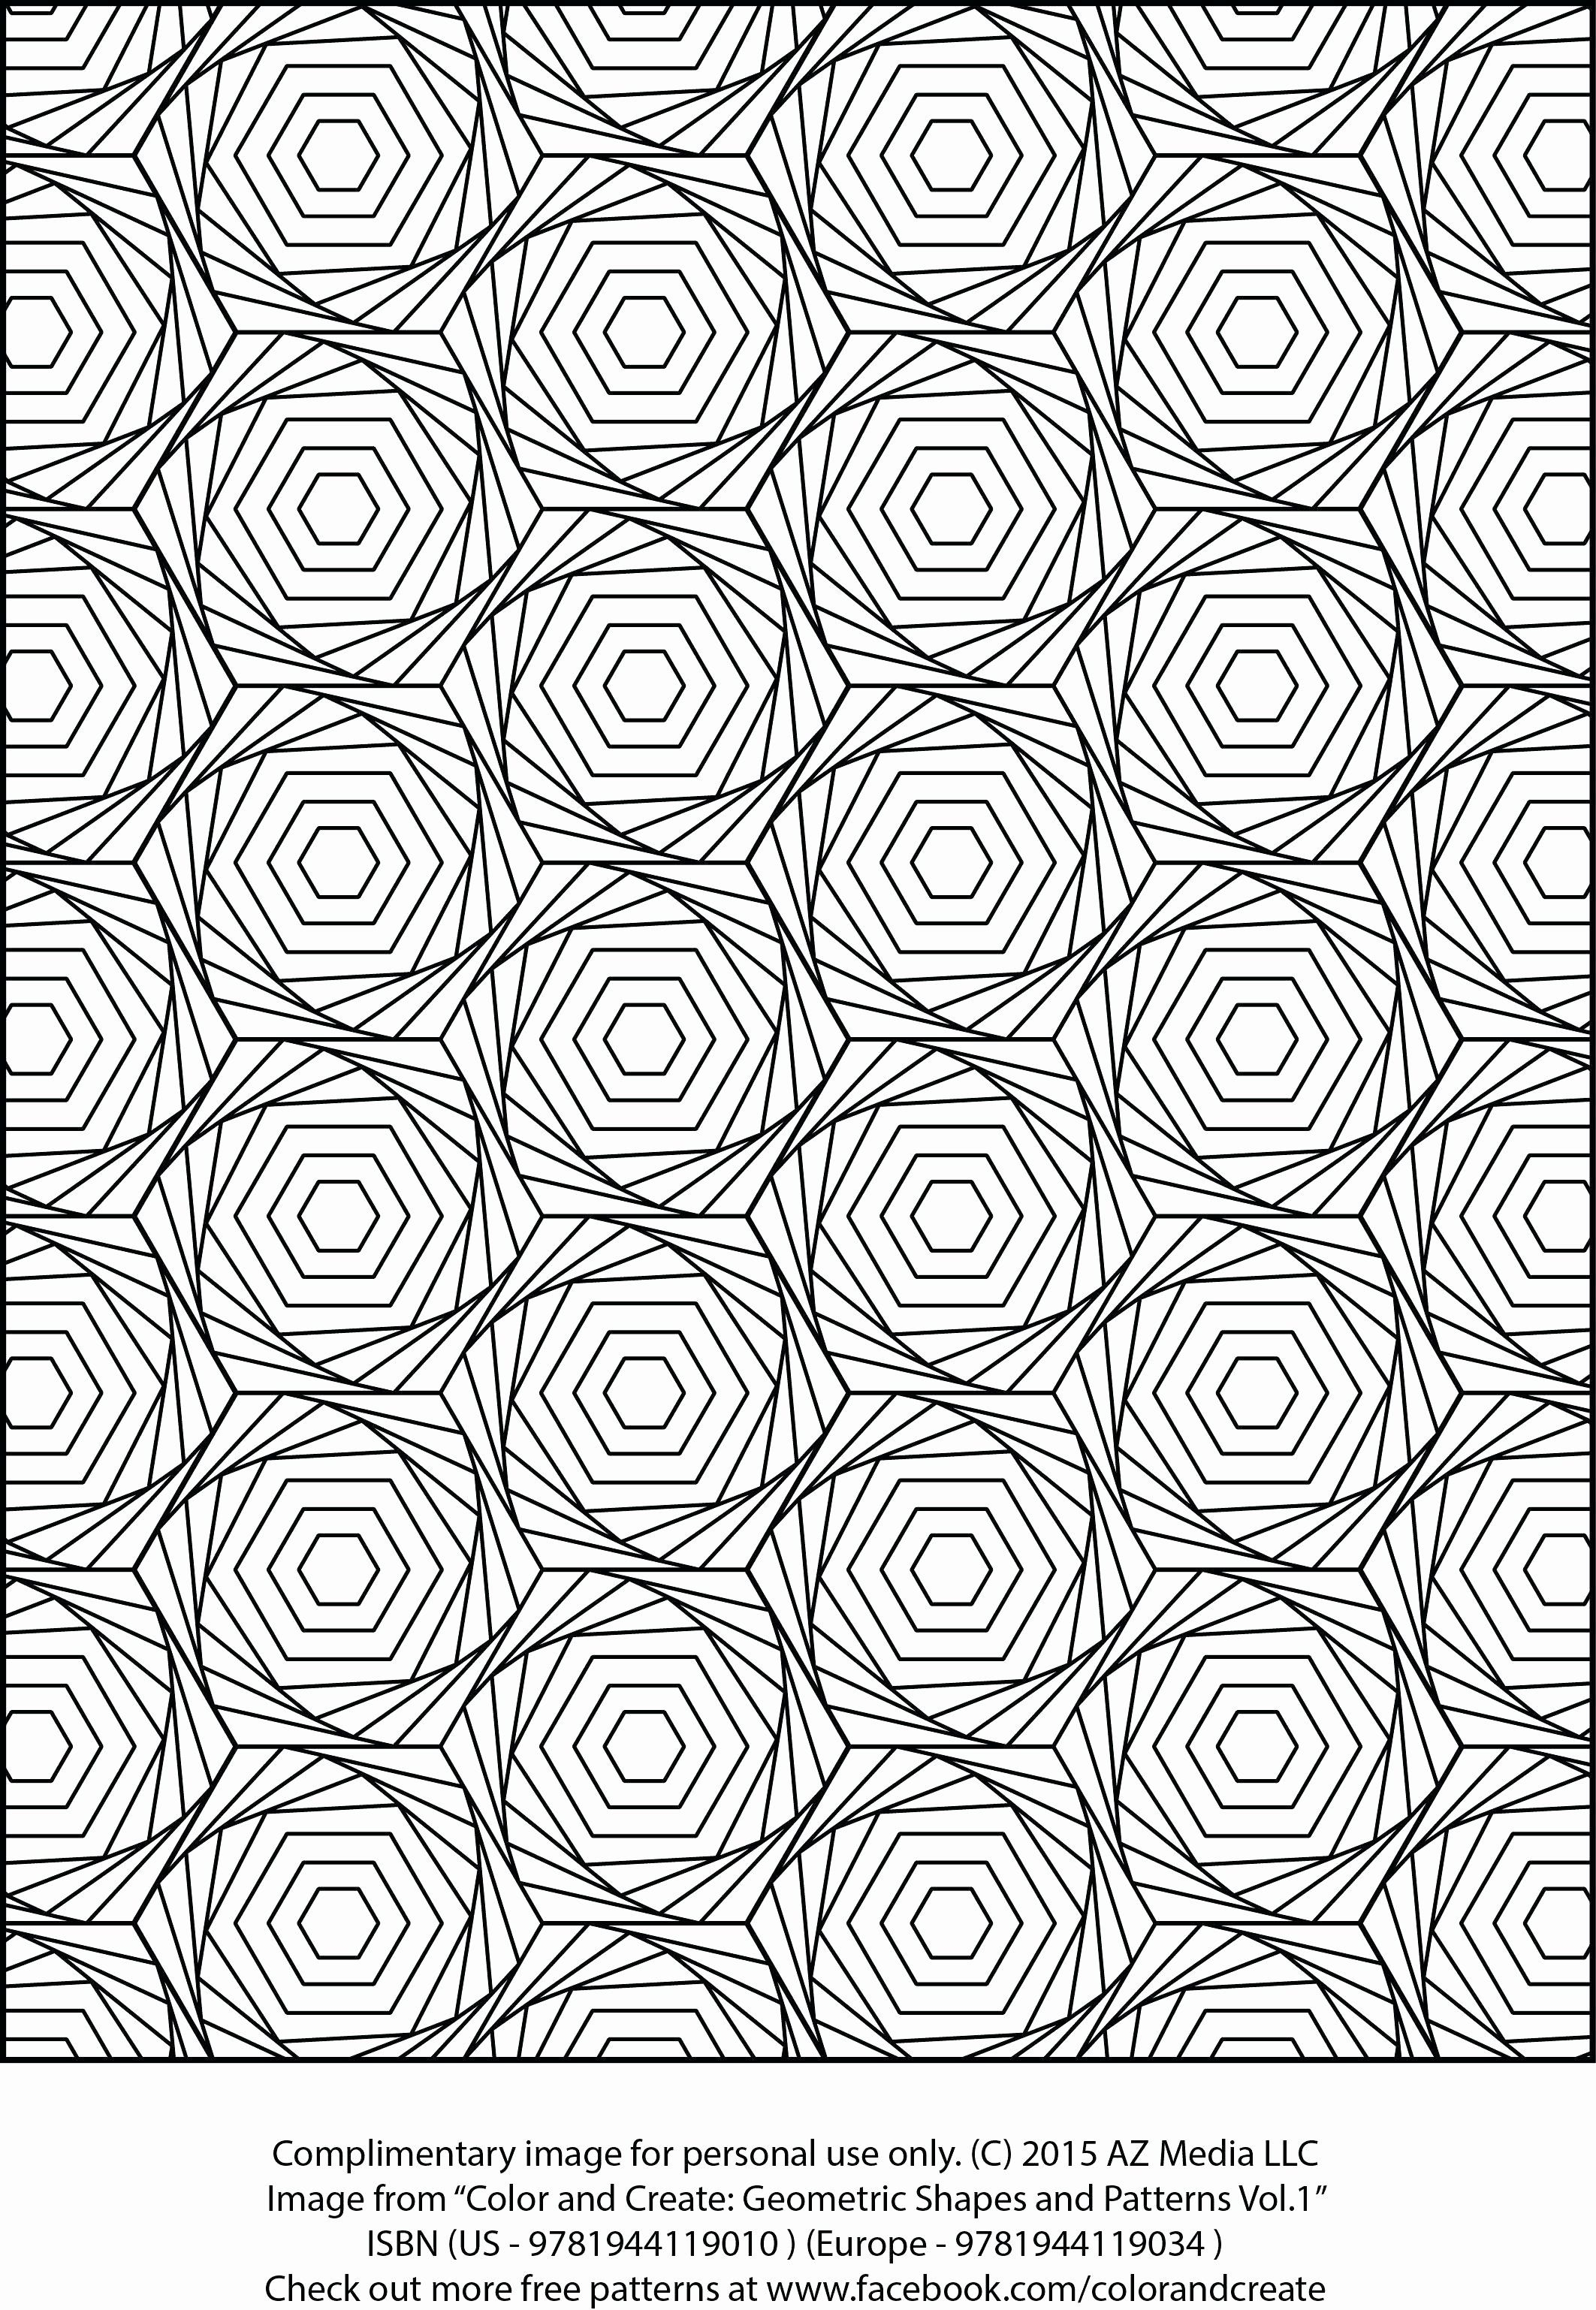 Geometric Design Coloring Sheets Beautiful Free Geometric Shapes Coloring Pages Keynotes Geometric Coloring Pages Pattern Coloring Pages Shape Coloring Pages